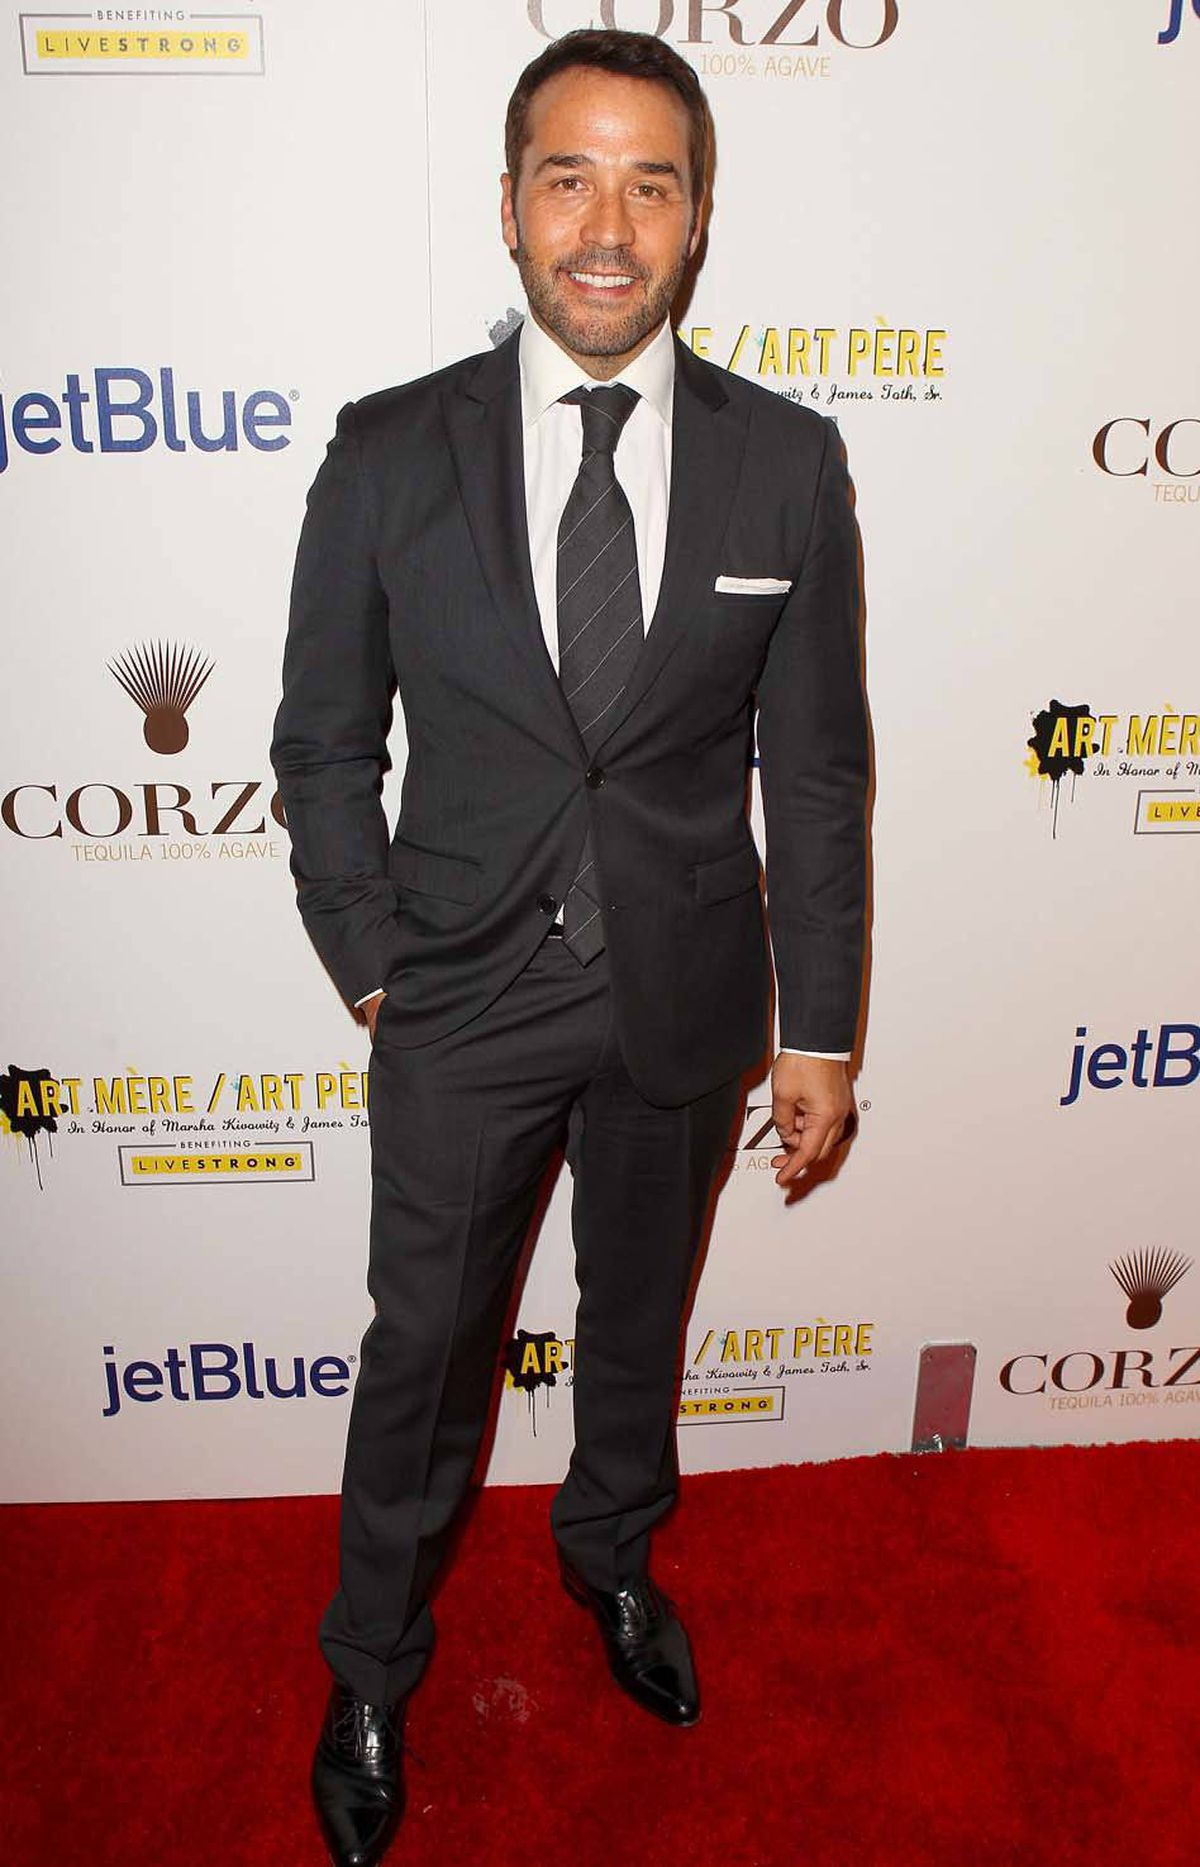 Determined champion of the underclasses Jeremy Piven wore three shades of grey to the second annual Art Mere/Art Pere Night in West Hollwood last week.